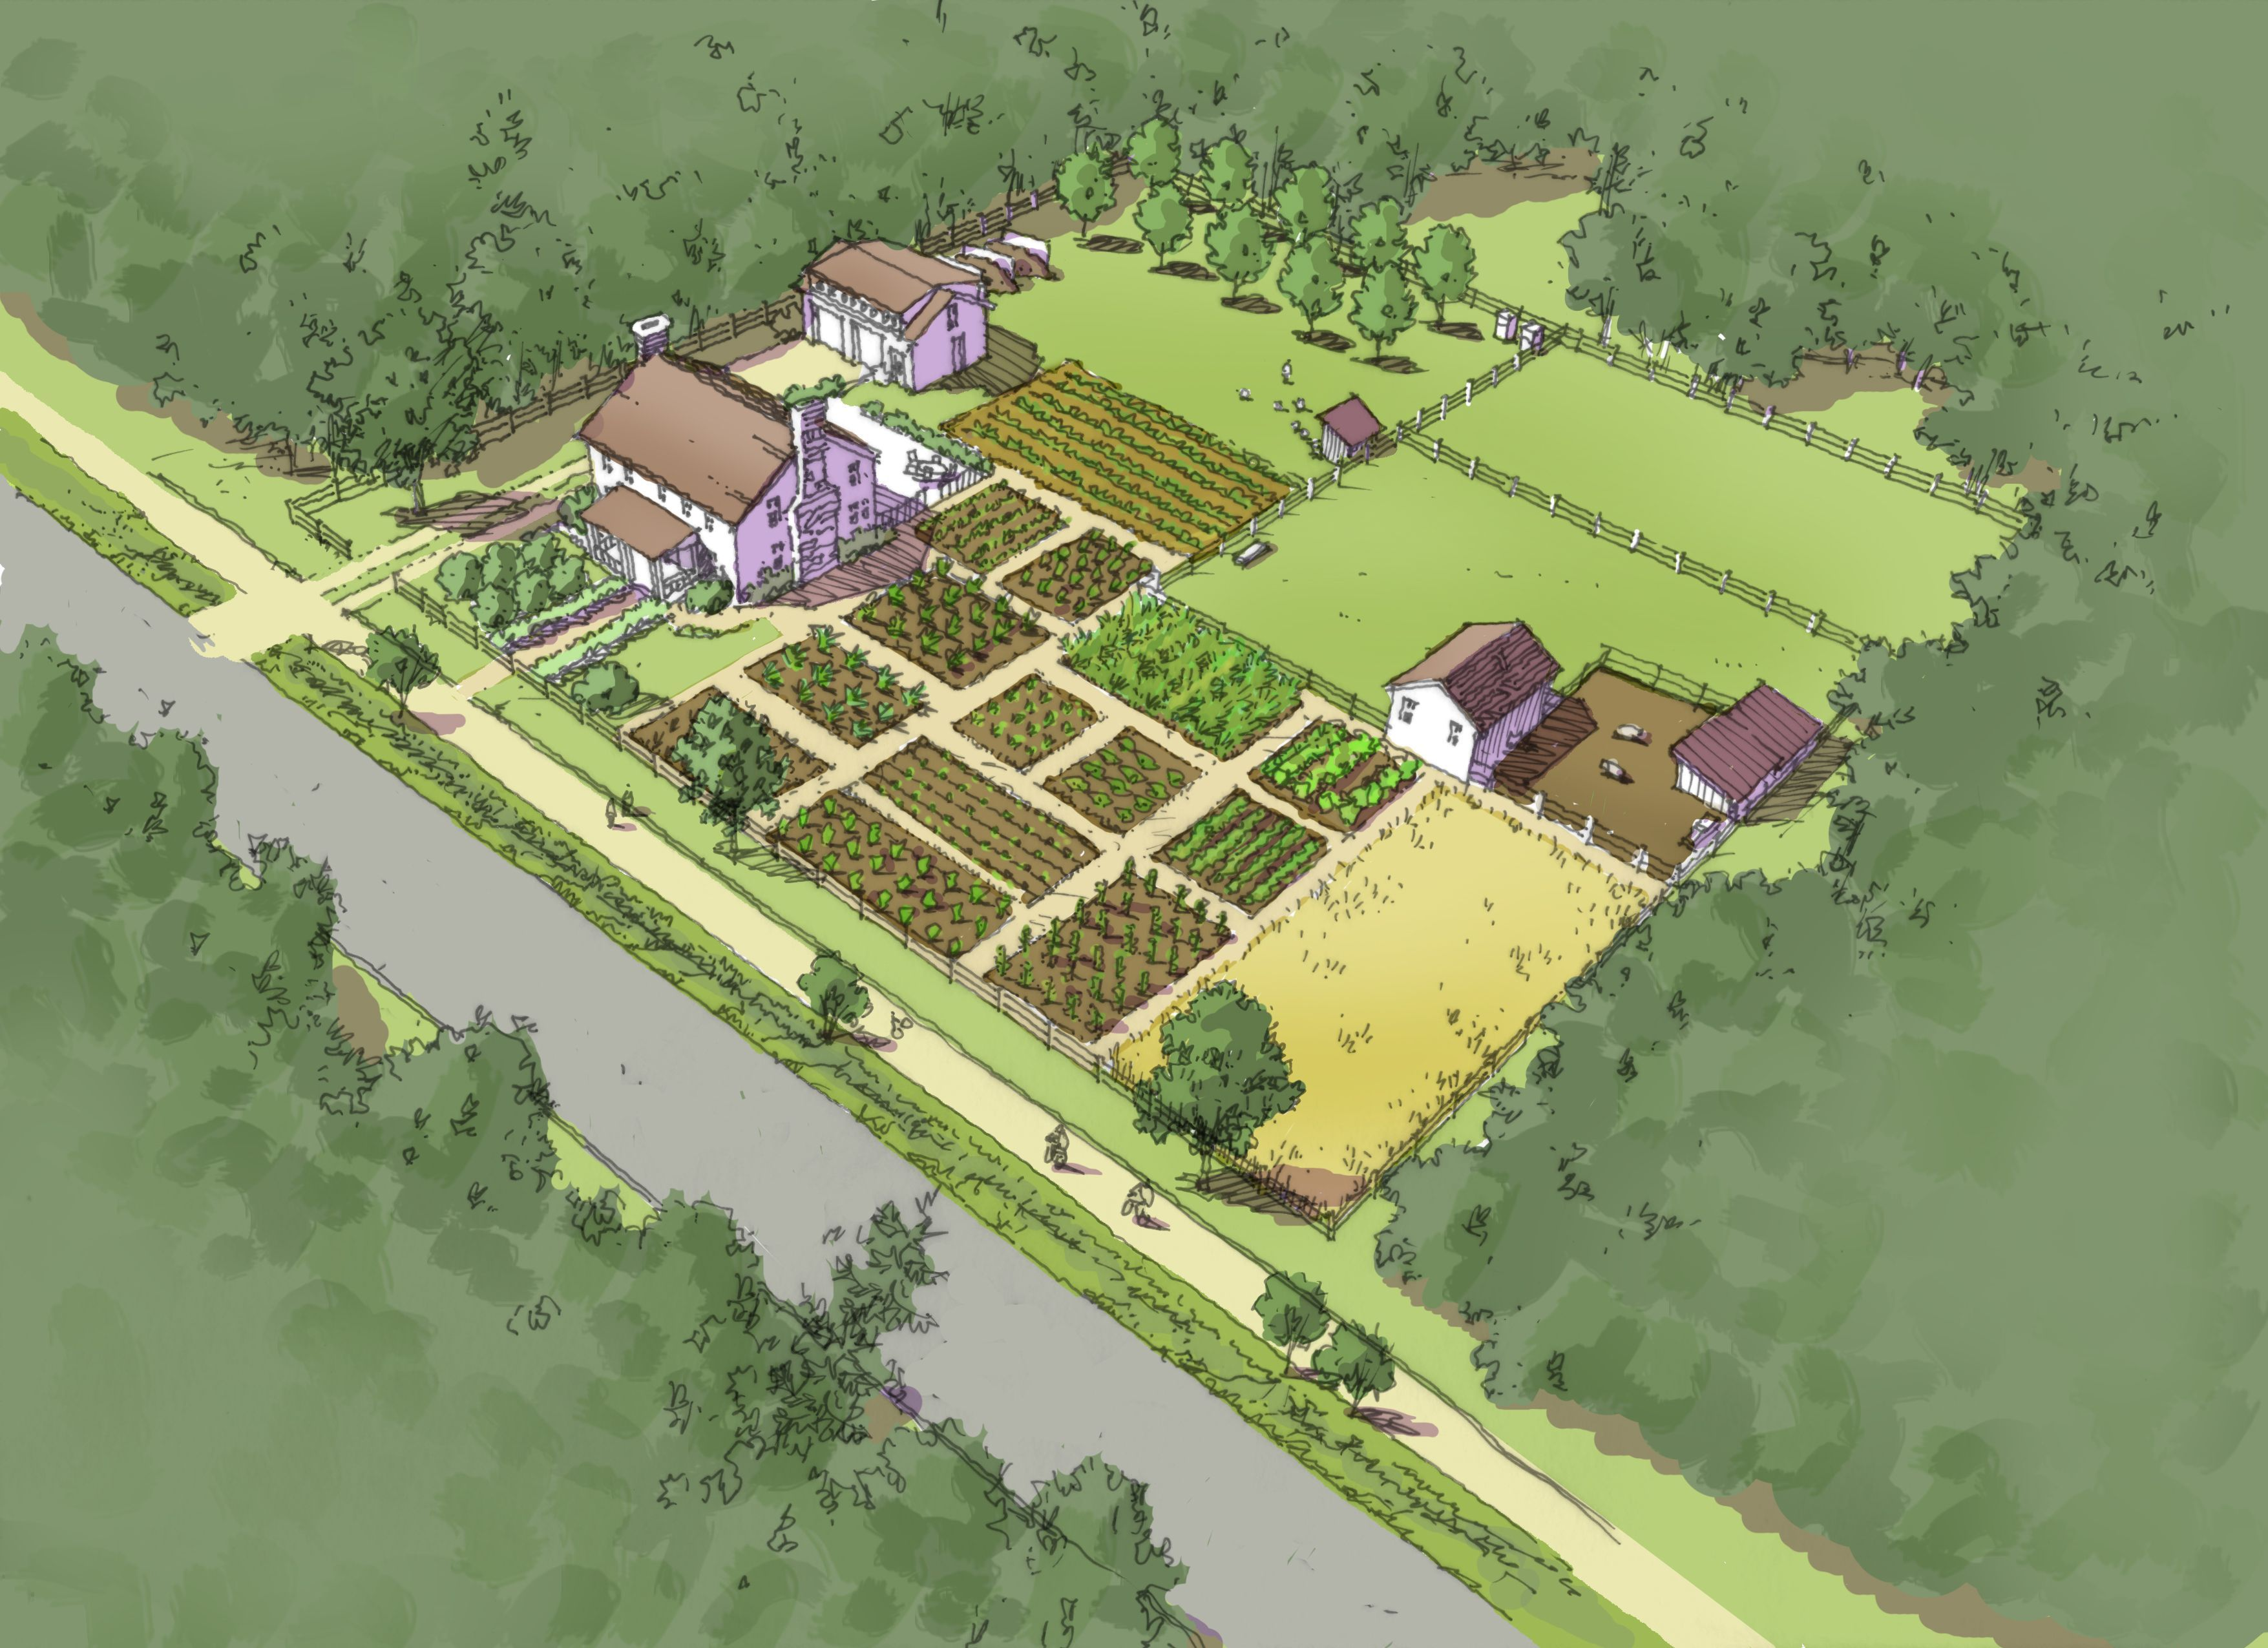 Illustrated Comprehensive Plan Self Sufficient One Acre Homestead Tpudc Town Planning Urban Farm Design Farm Layout Homestead Layout